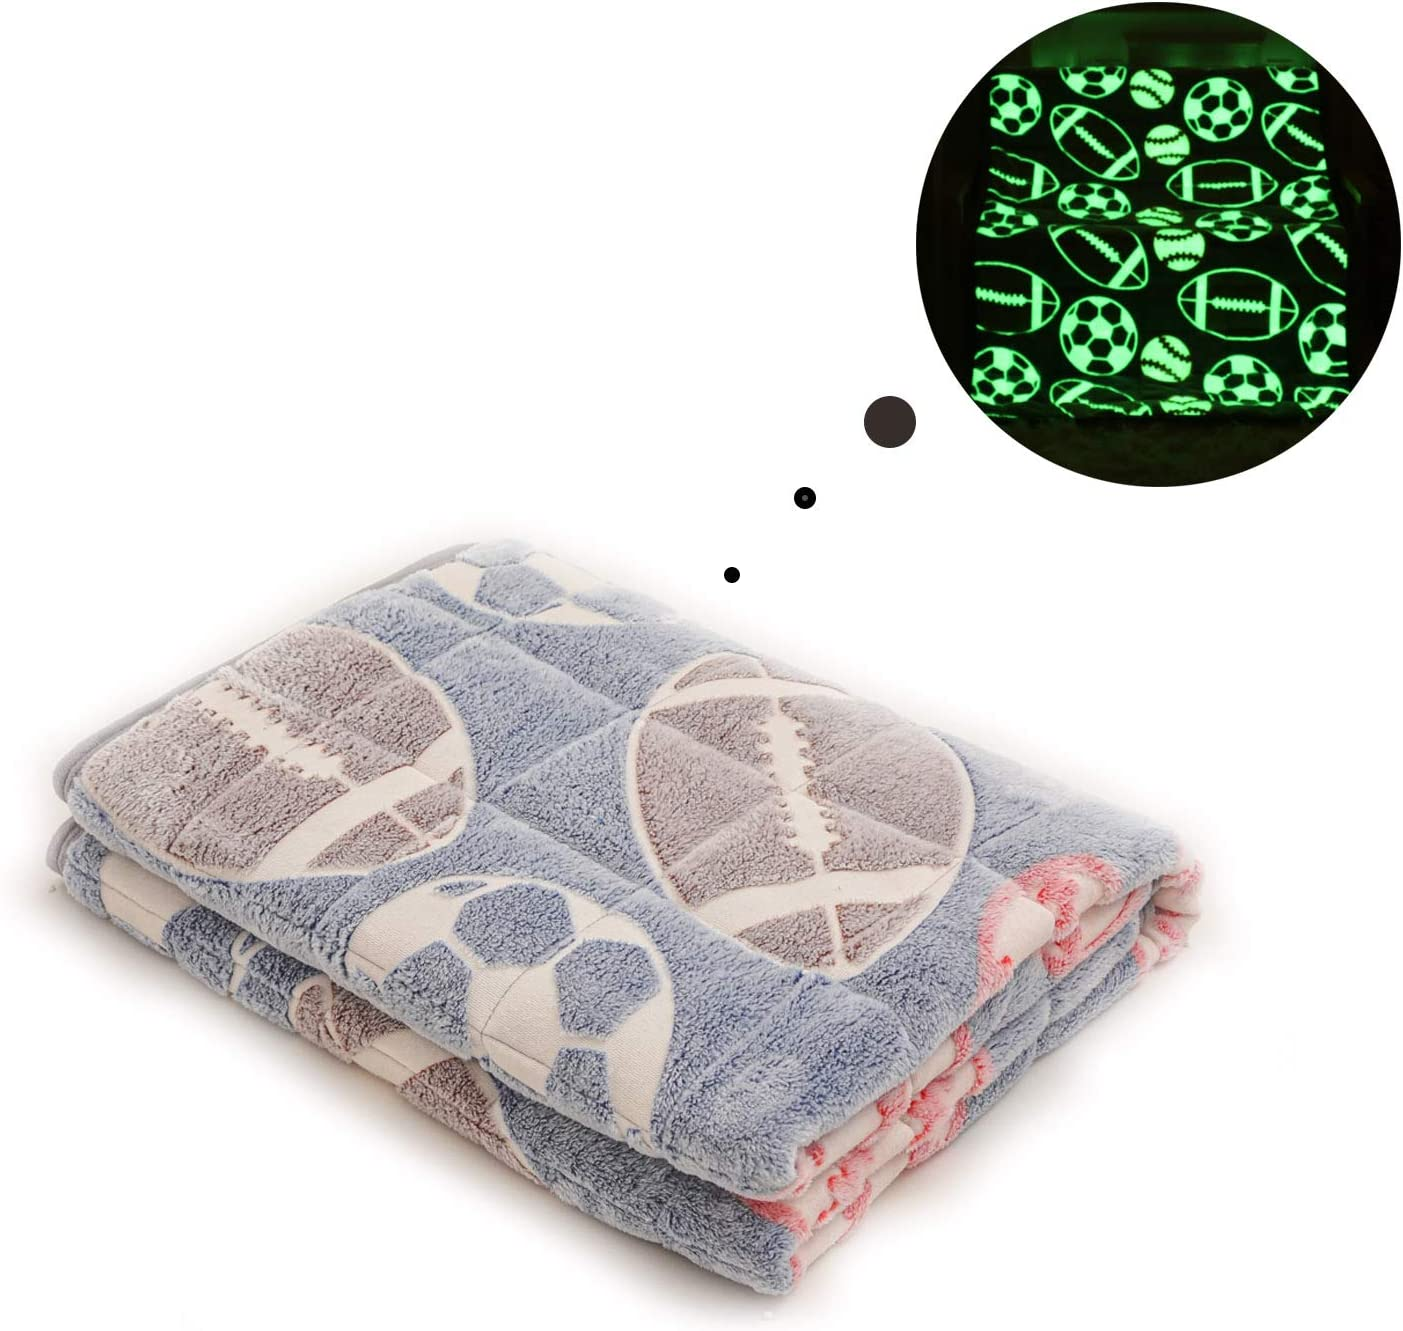 Grey VECOKNA Weighted Blanket 7lbs Football Pattern Glow in The Dark Throw Blanket for Kids Teens Soft Minky Bottom /& Cool Cotton Top Reversible Weighted Blanket Twin//Full Size 41x60